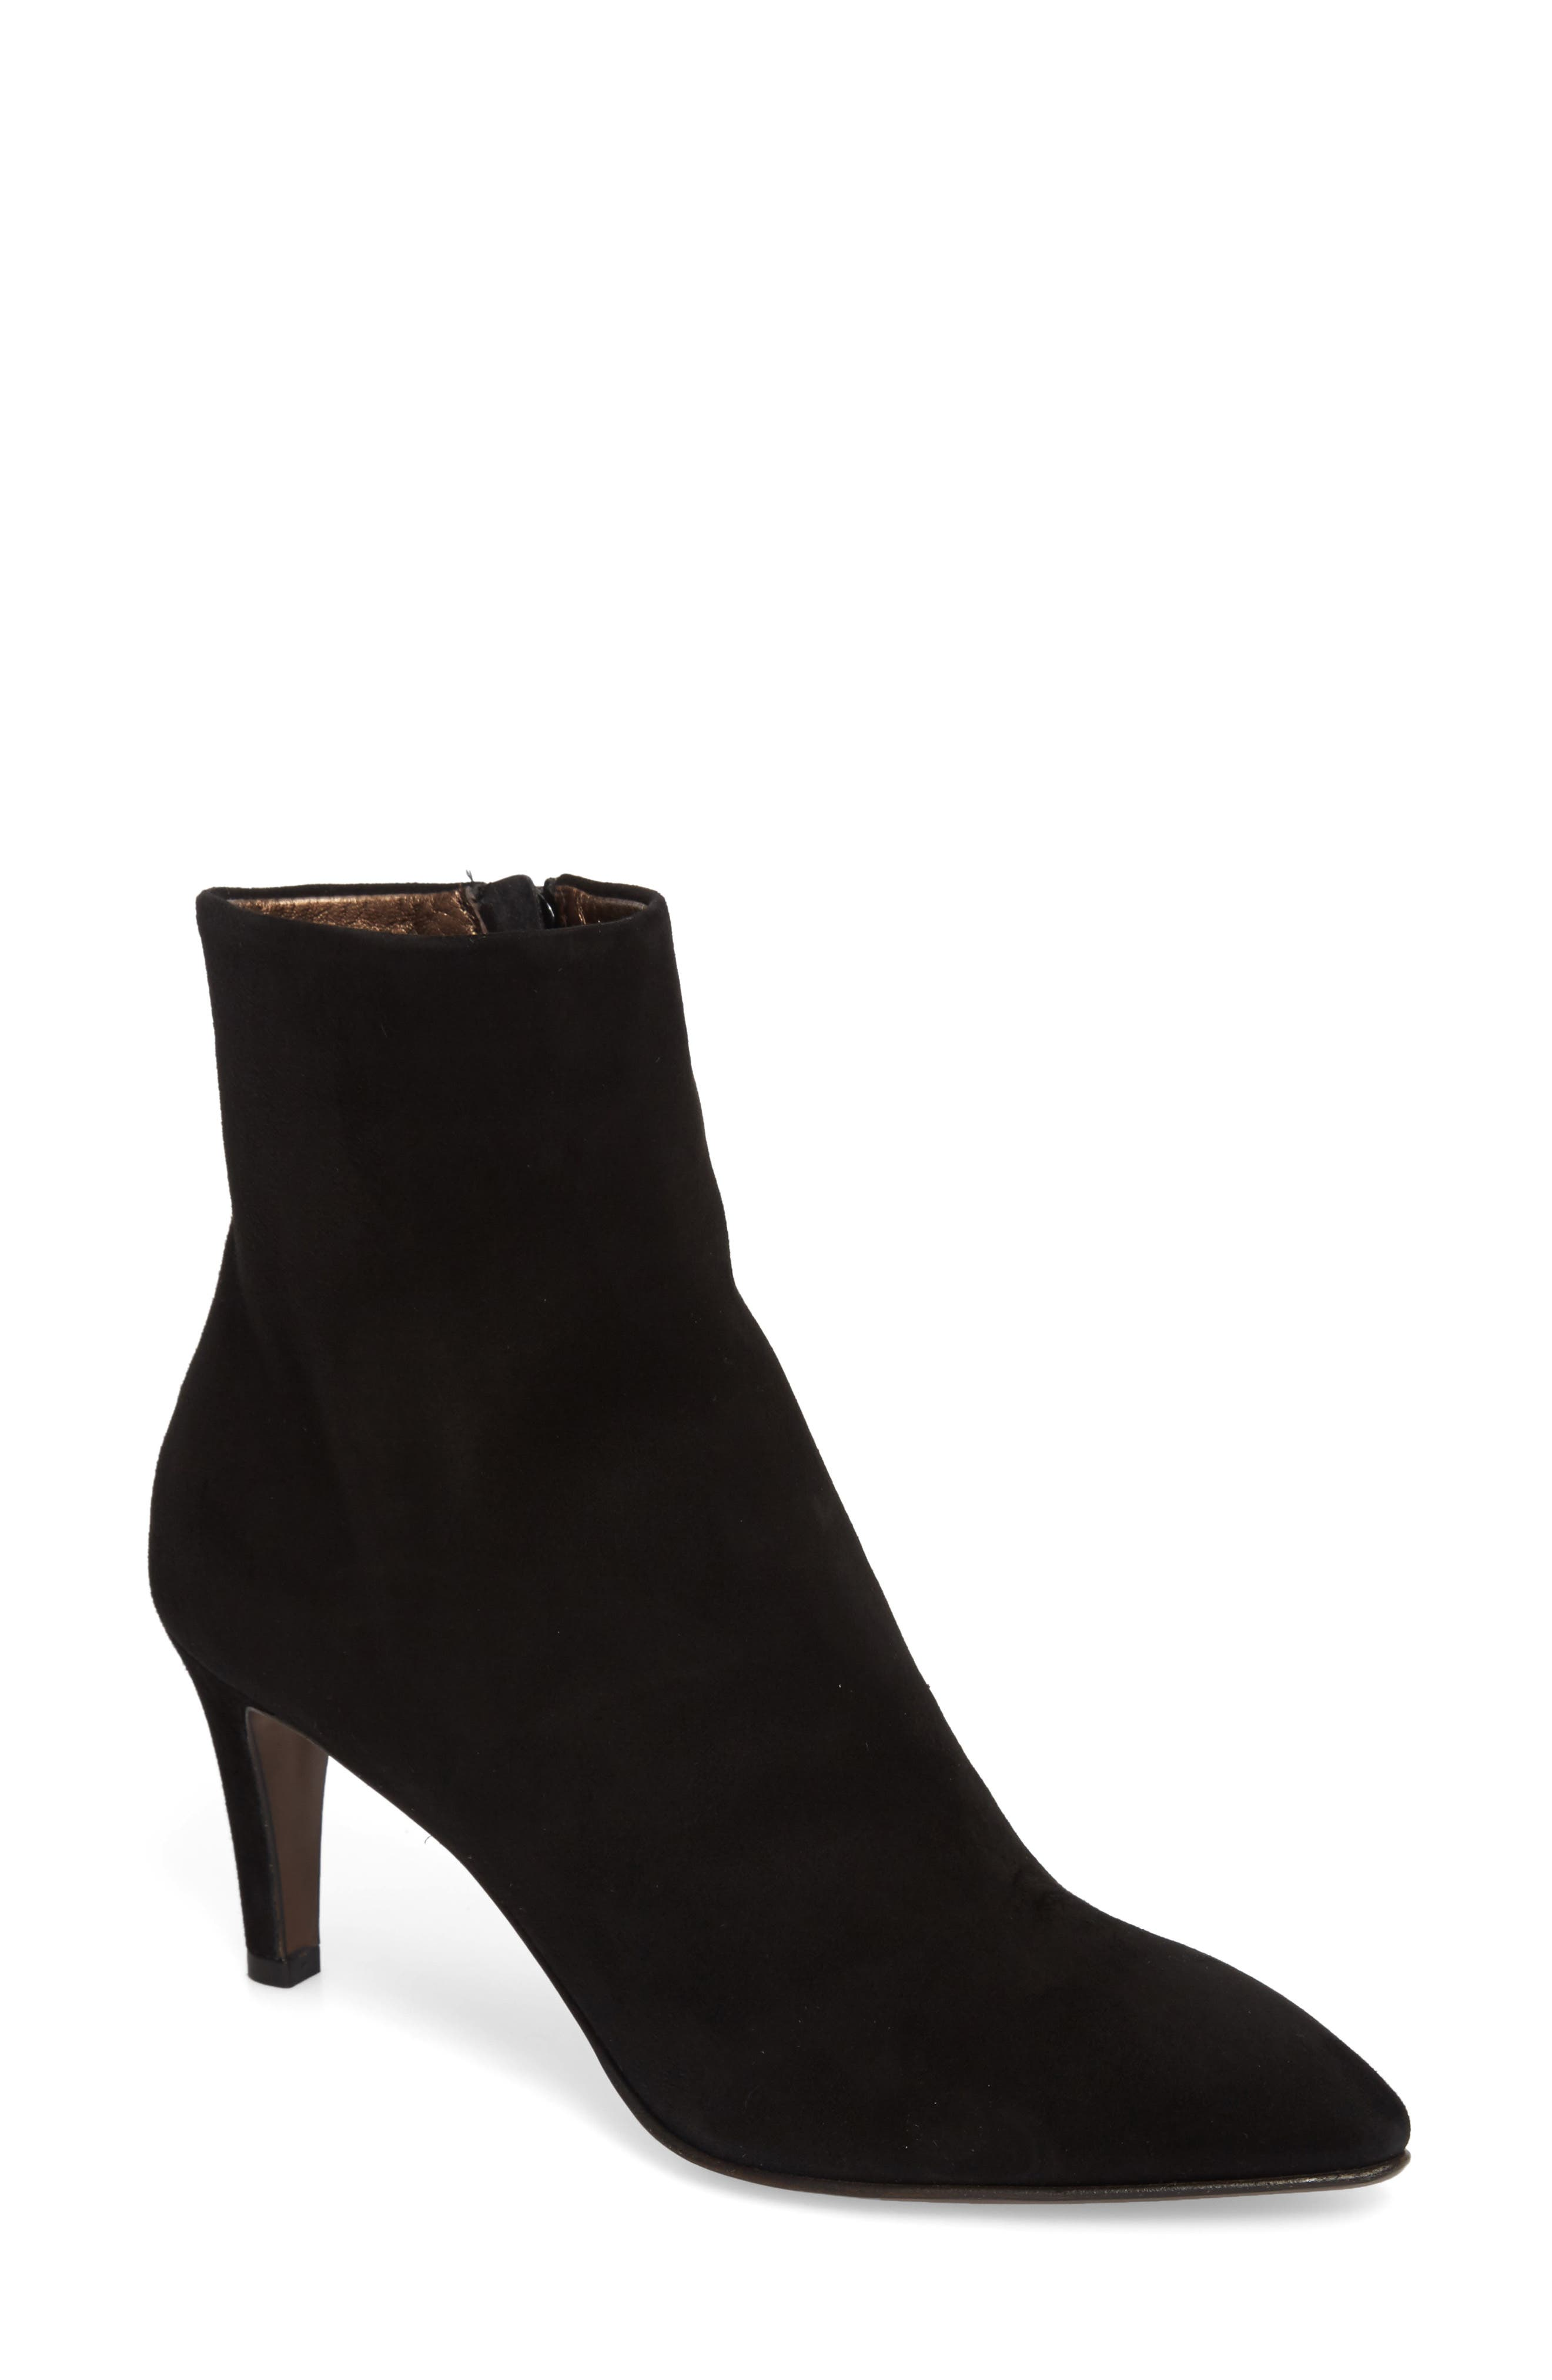 Alternate Image 1 Selected - AGL Pointy Toe Bootie (Women)